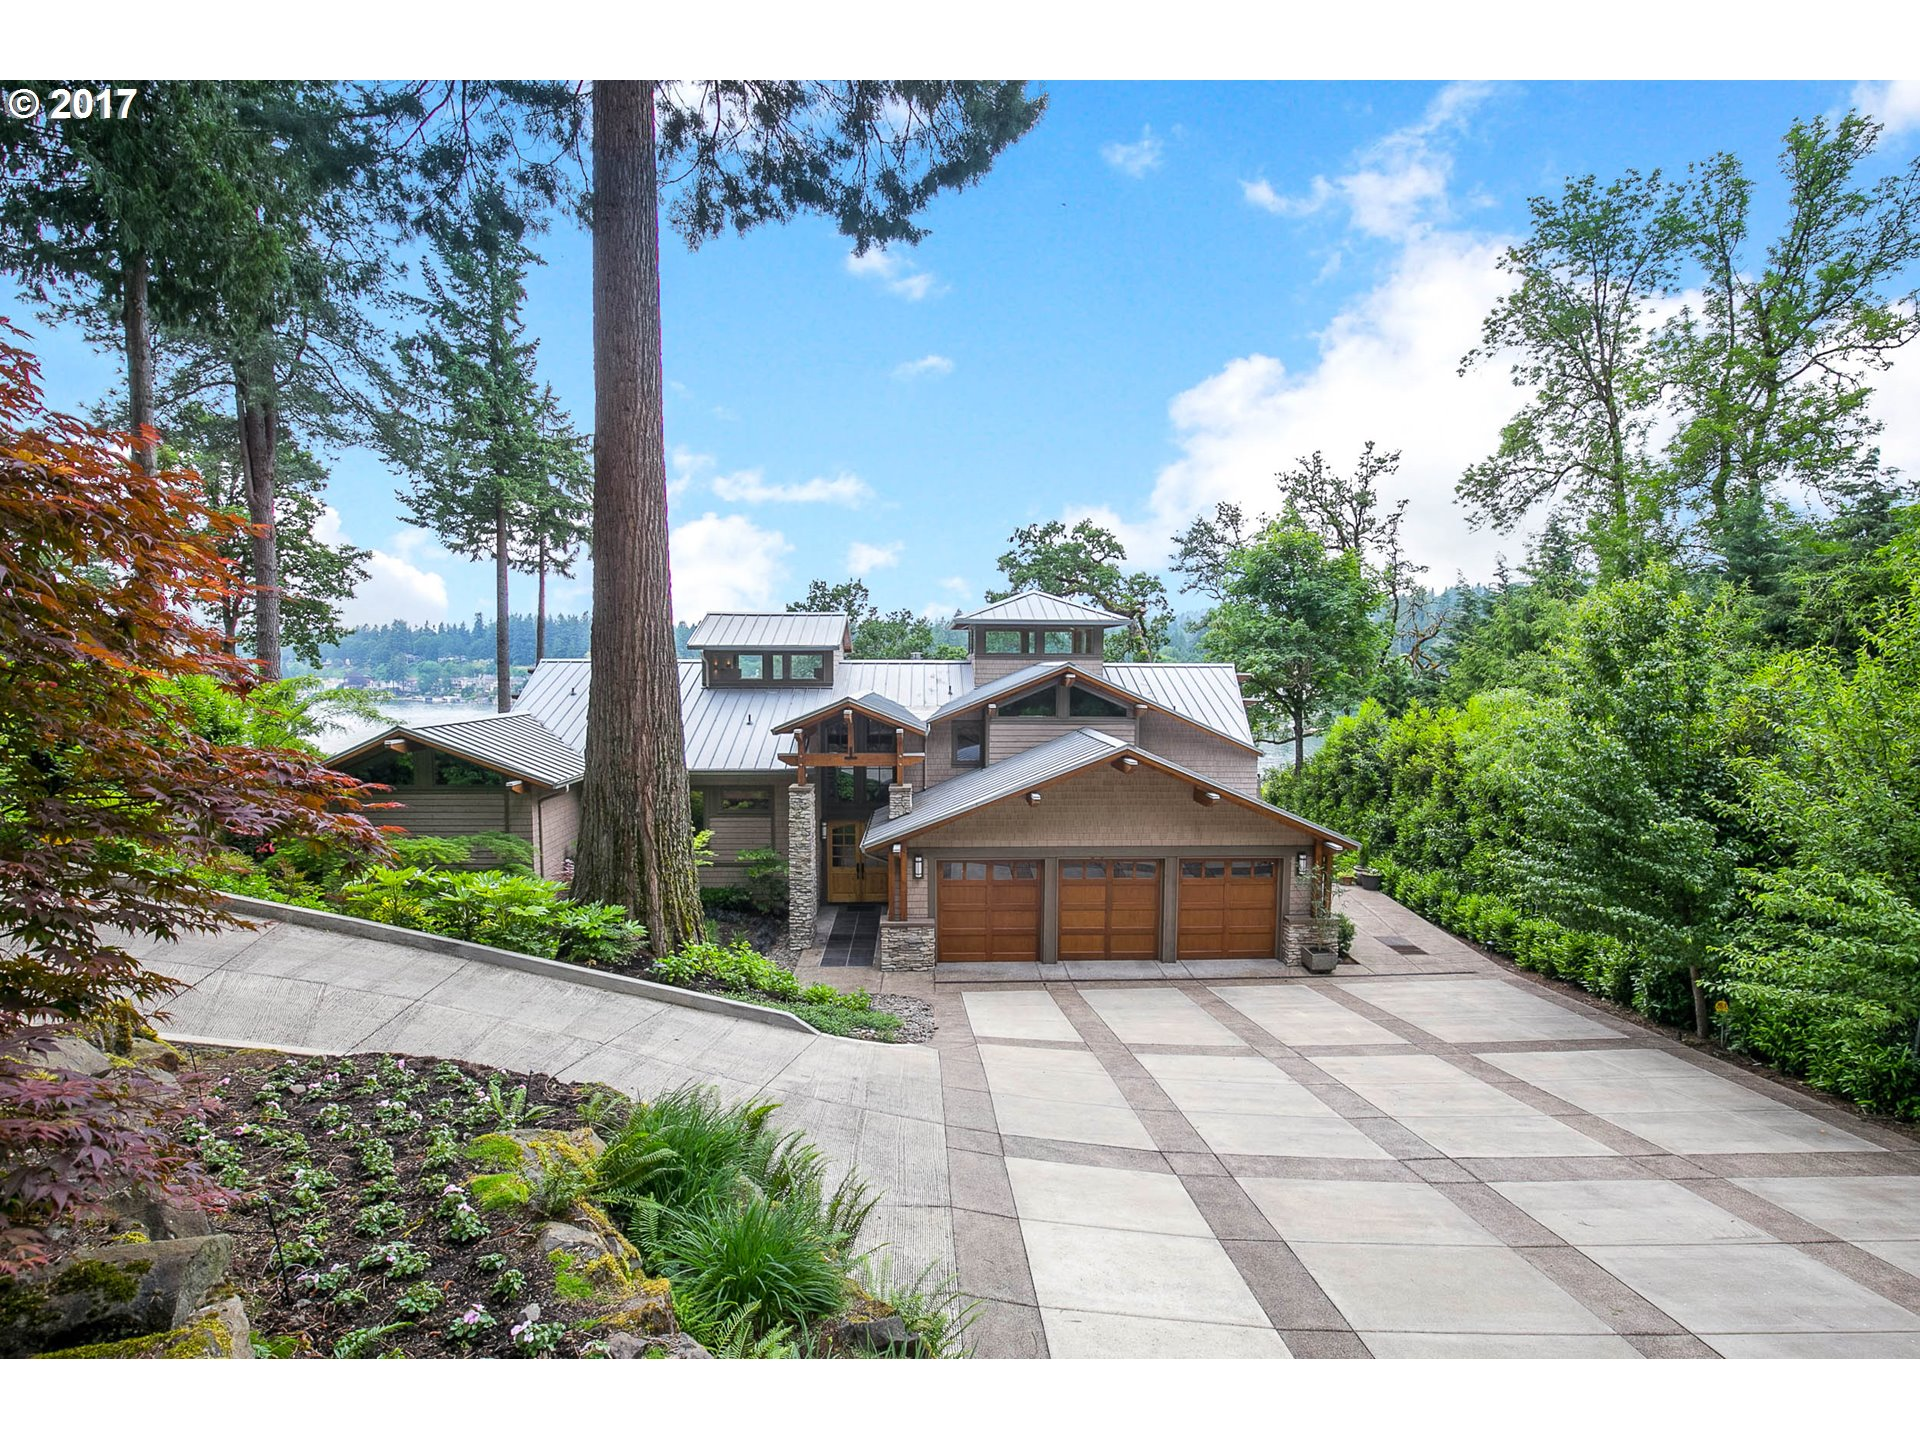 16661 PHANTOM BLUFF CT, Lake Oswego, OR 97034